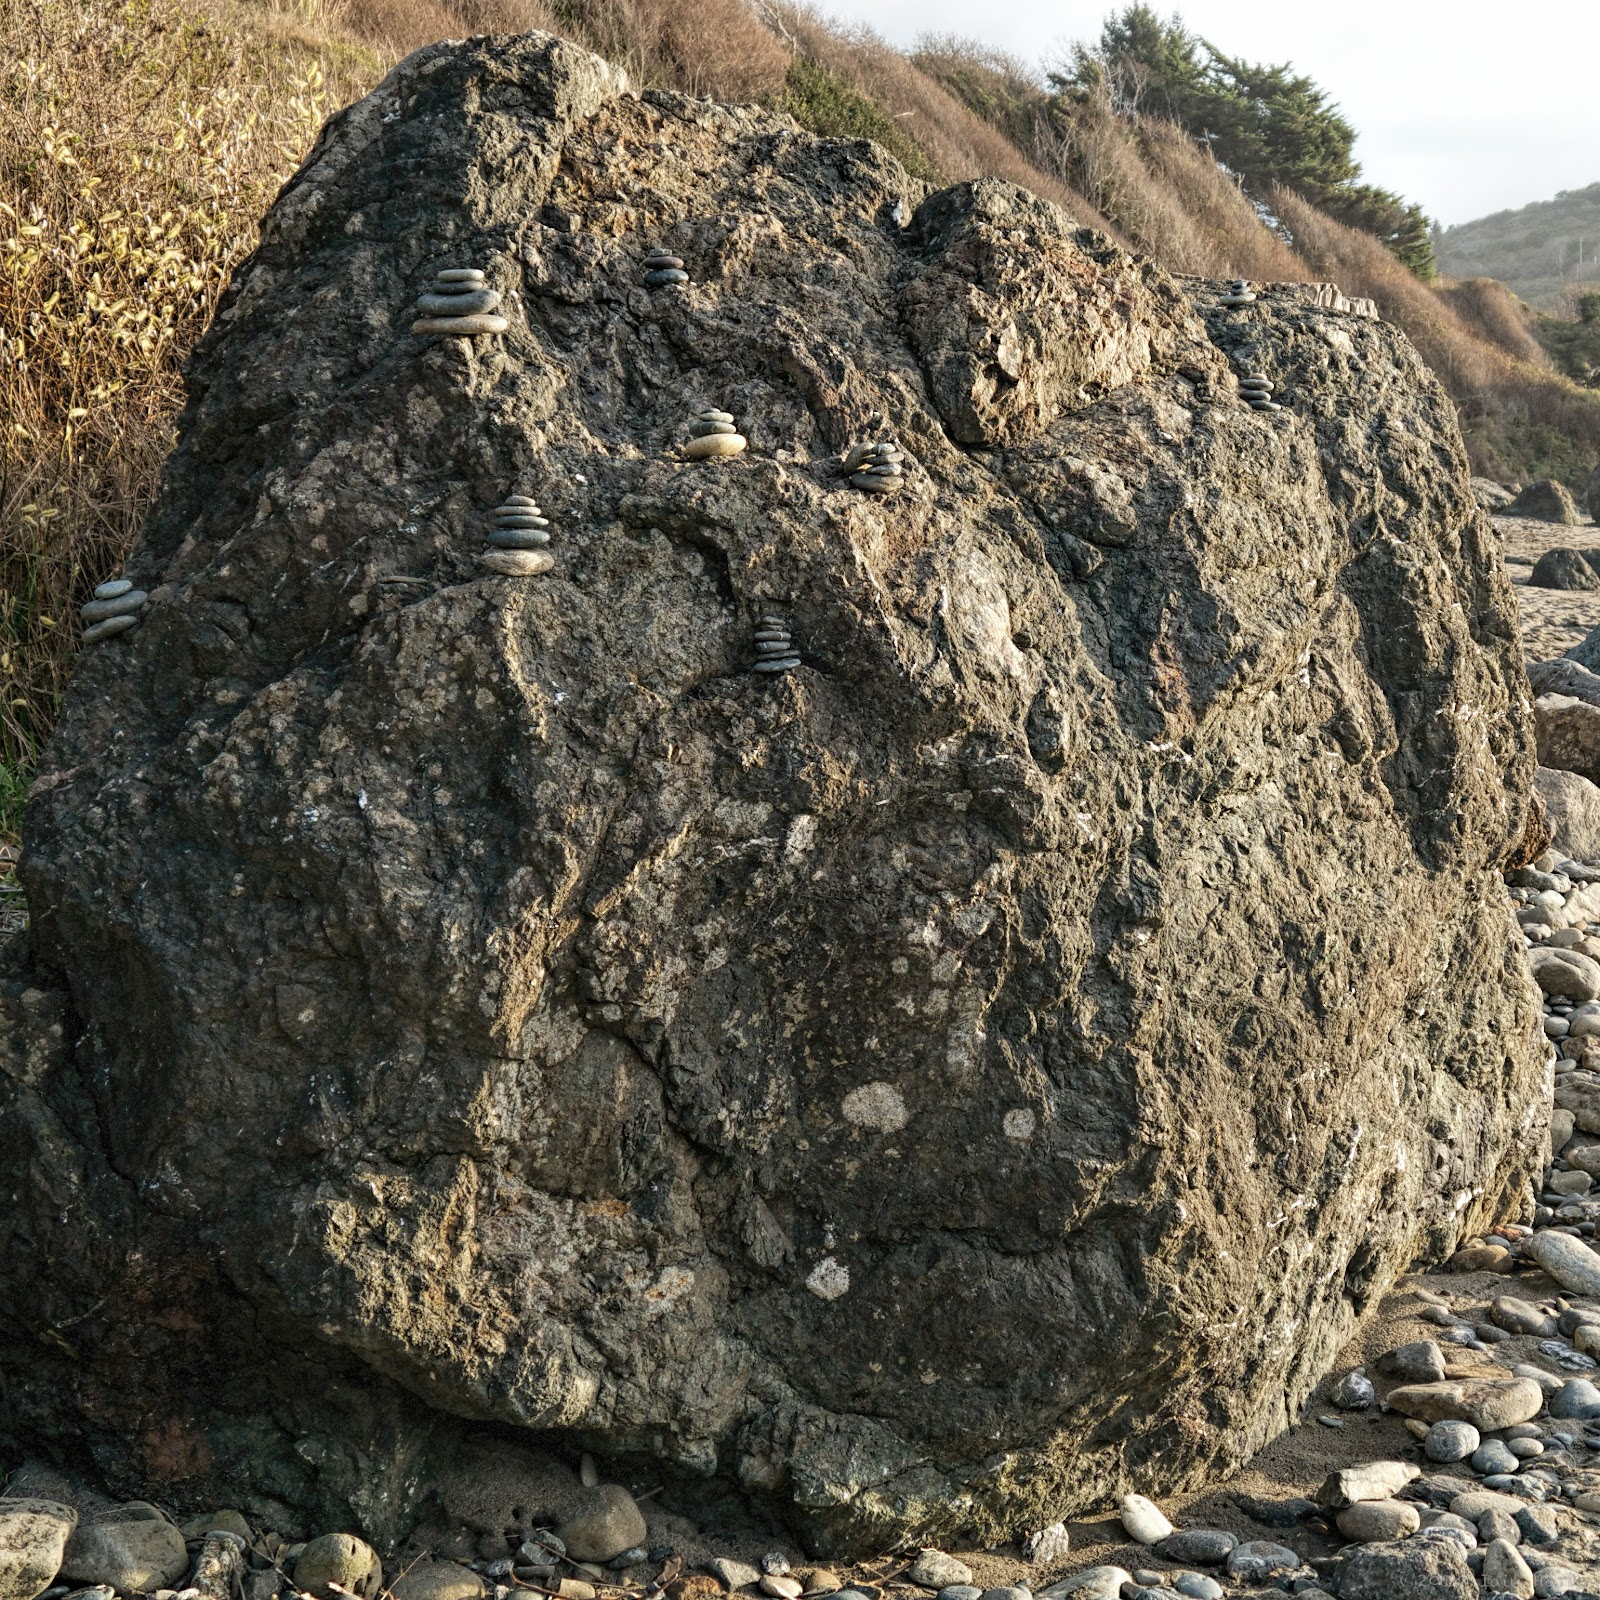 Large rock with zen rock formations on it